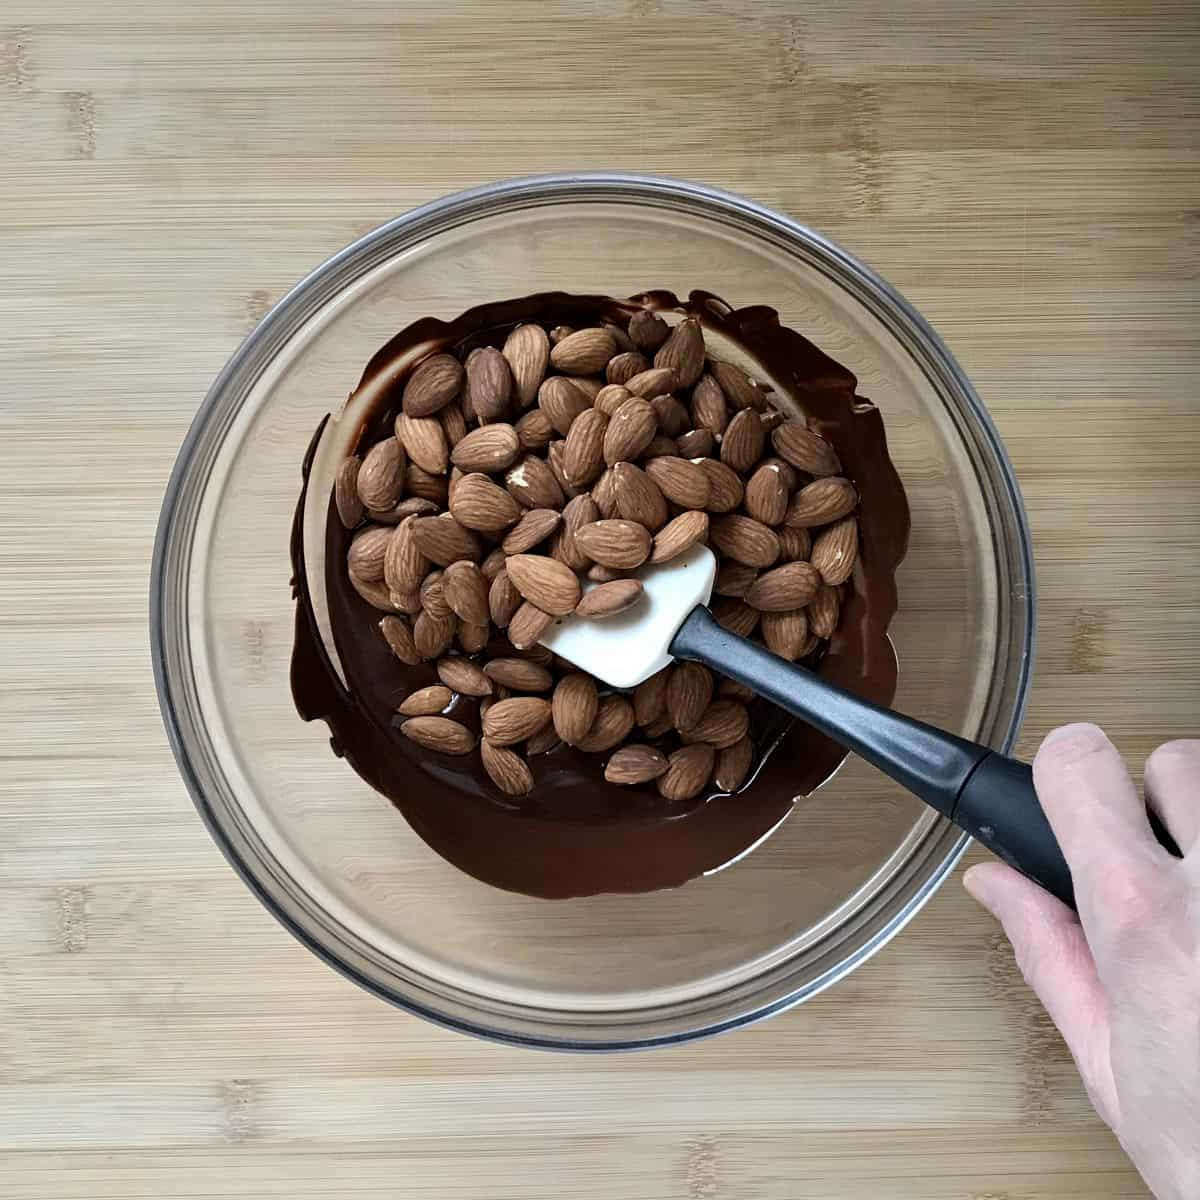 The mixture of chocolate and almonds in a bowl.